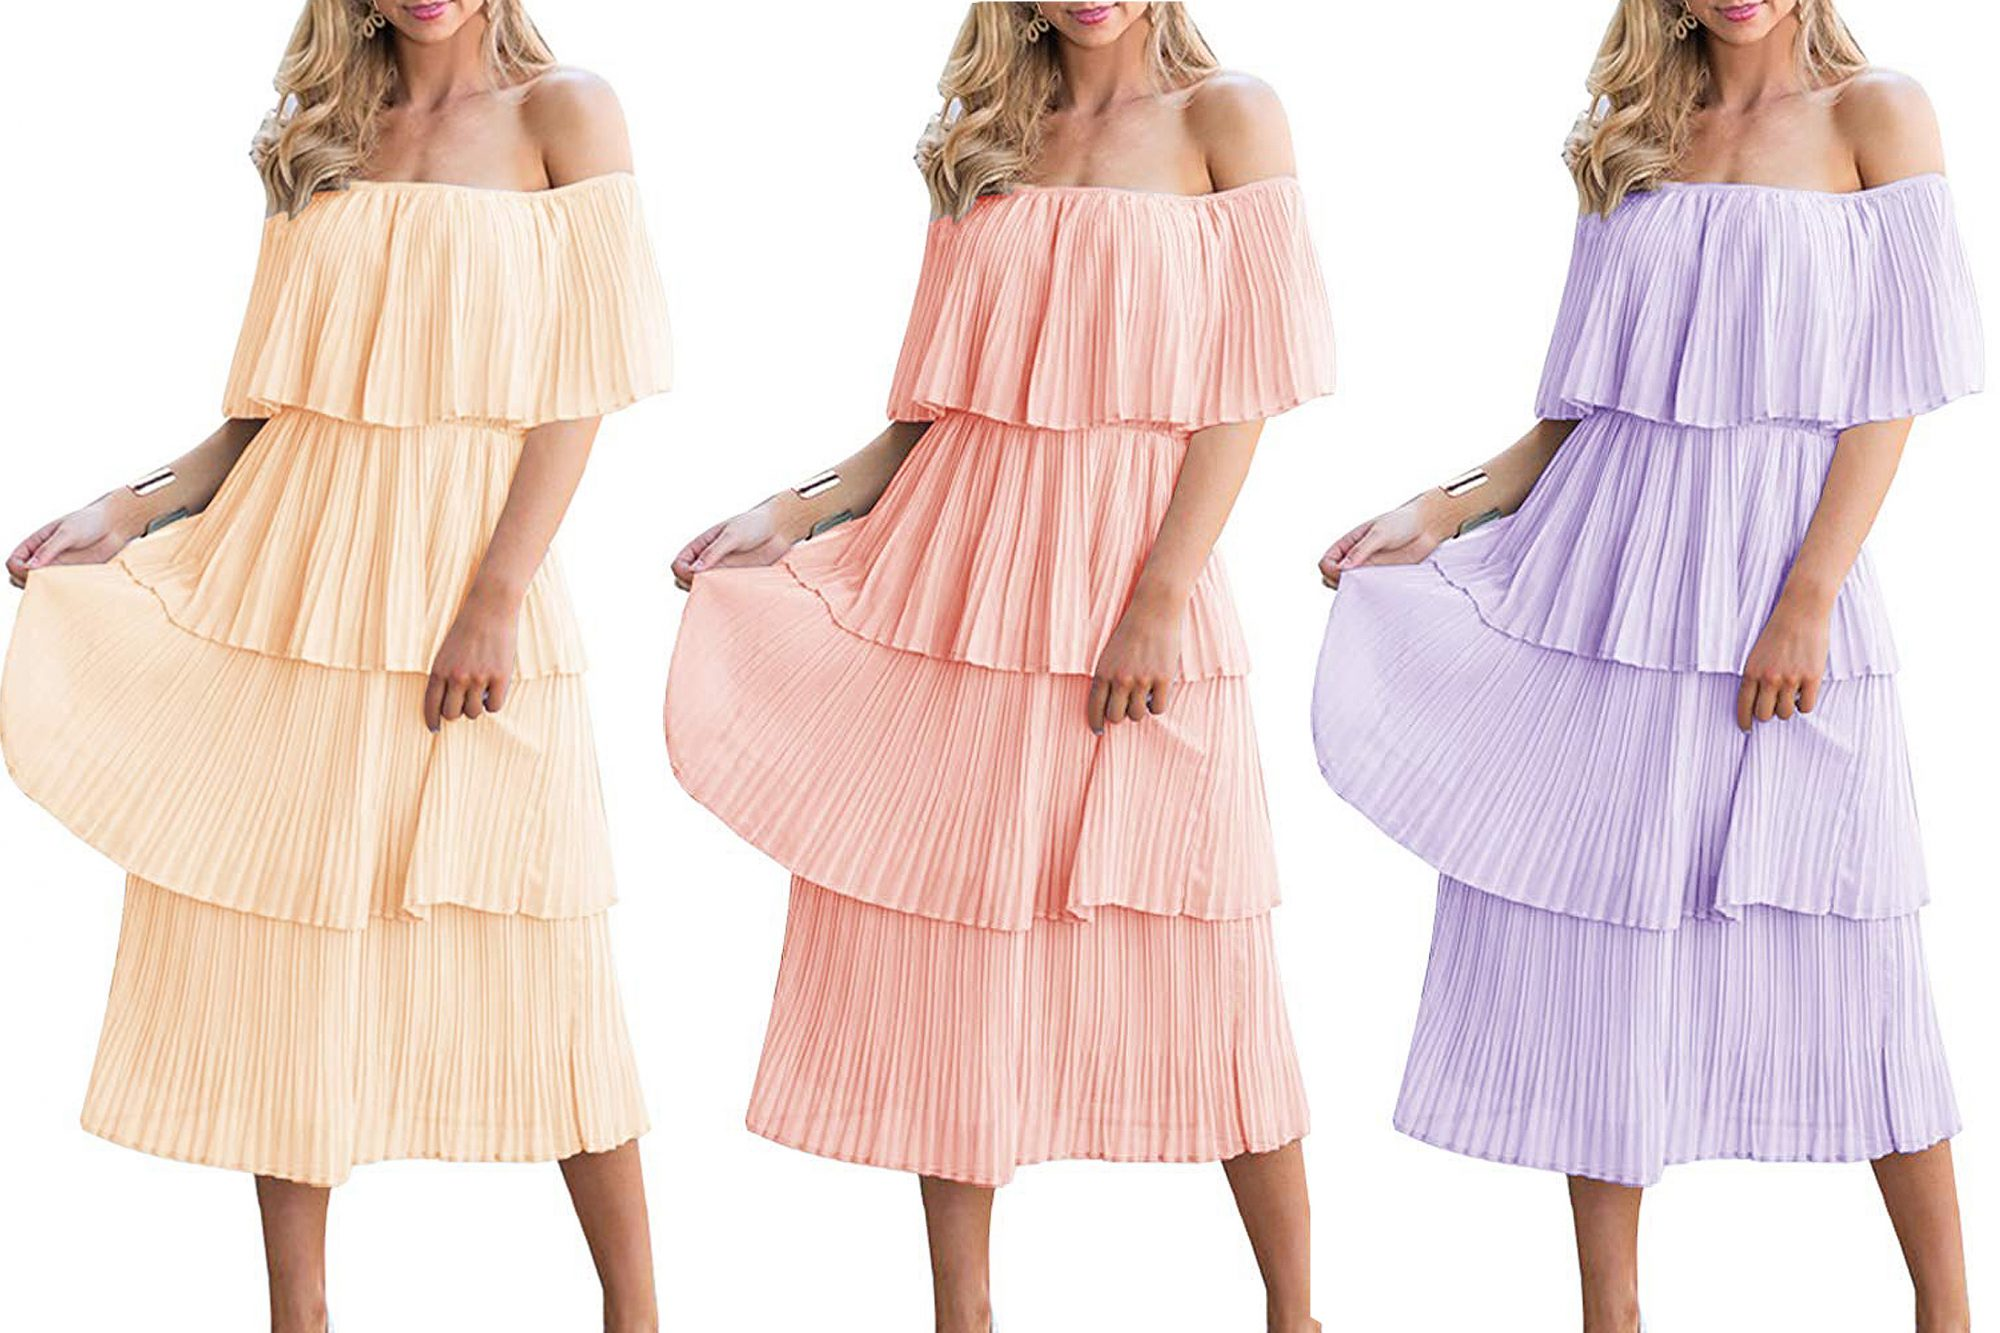 etcyy ruffle midi wedding guest dress amazon